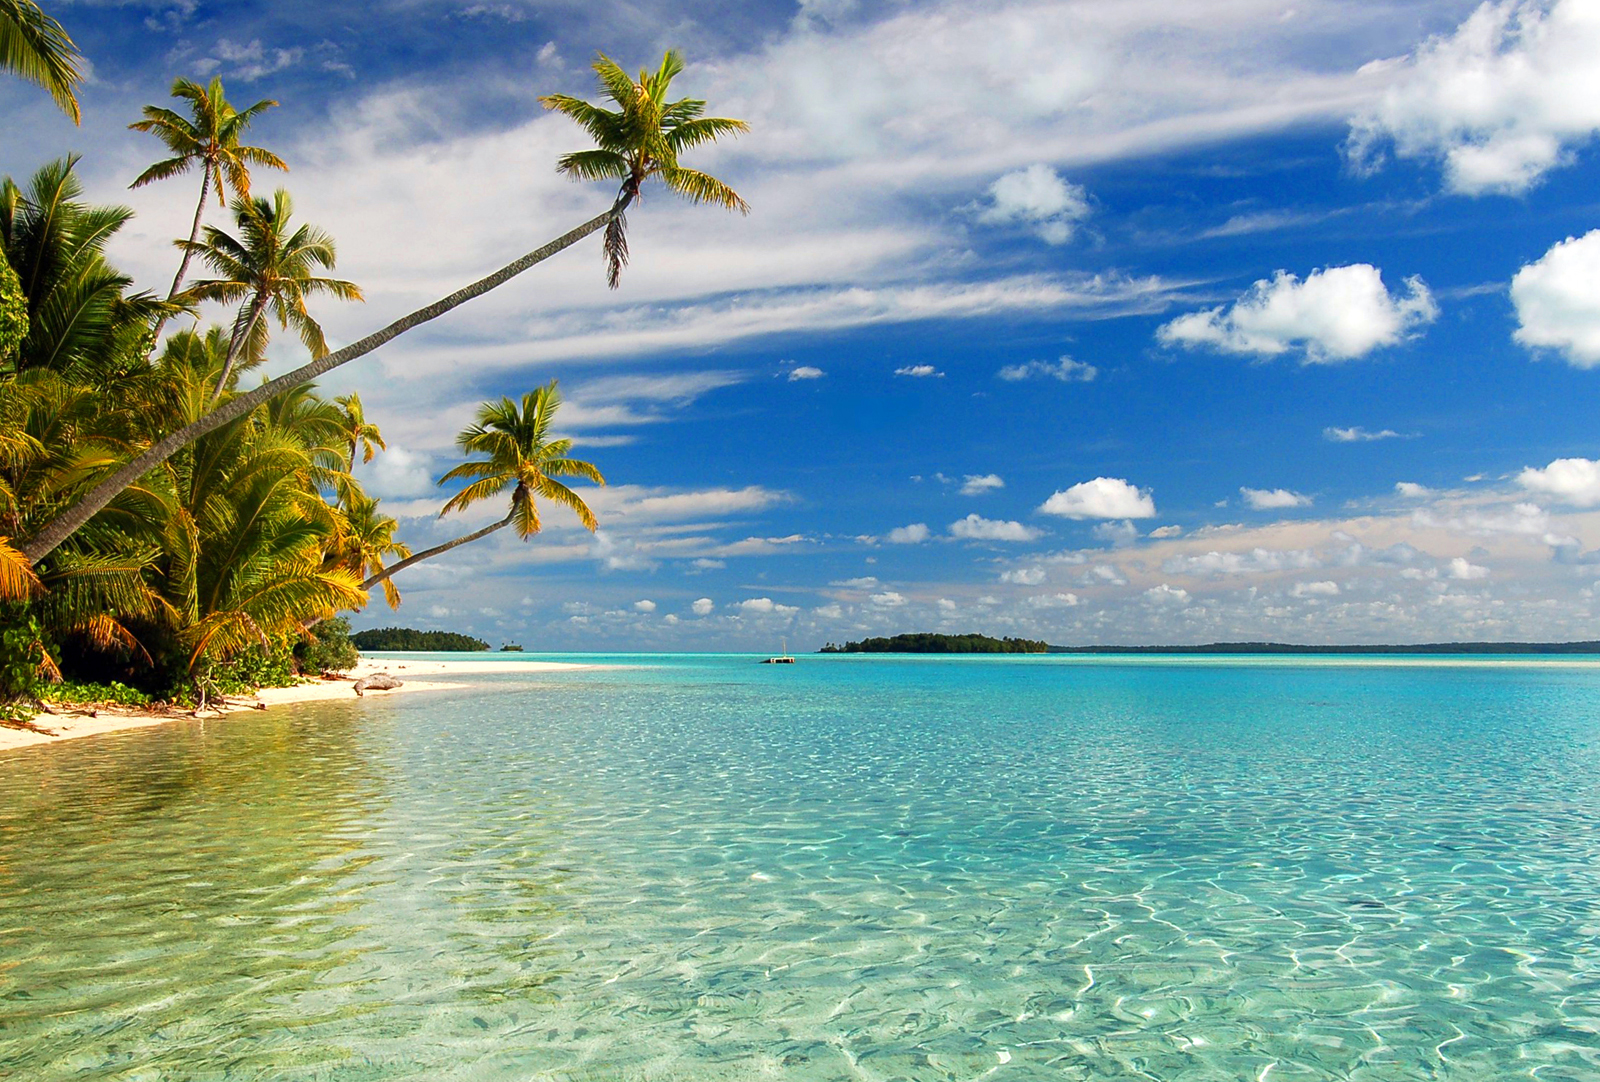 Download this Cook Islands picture